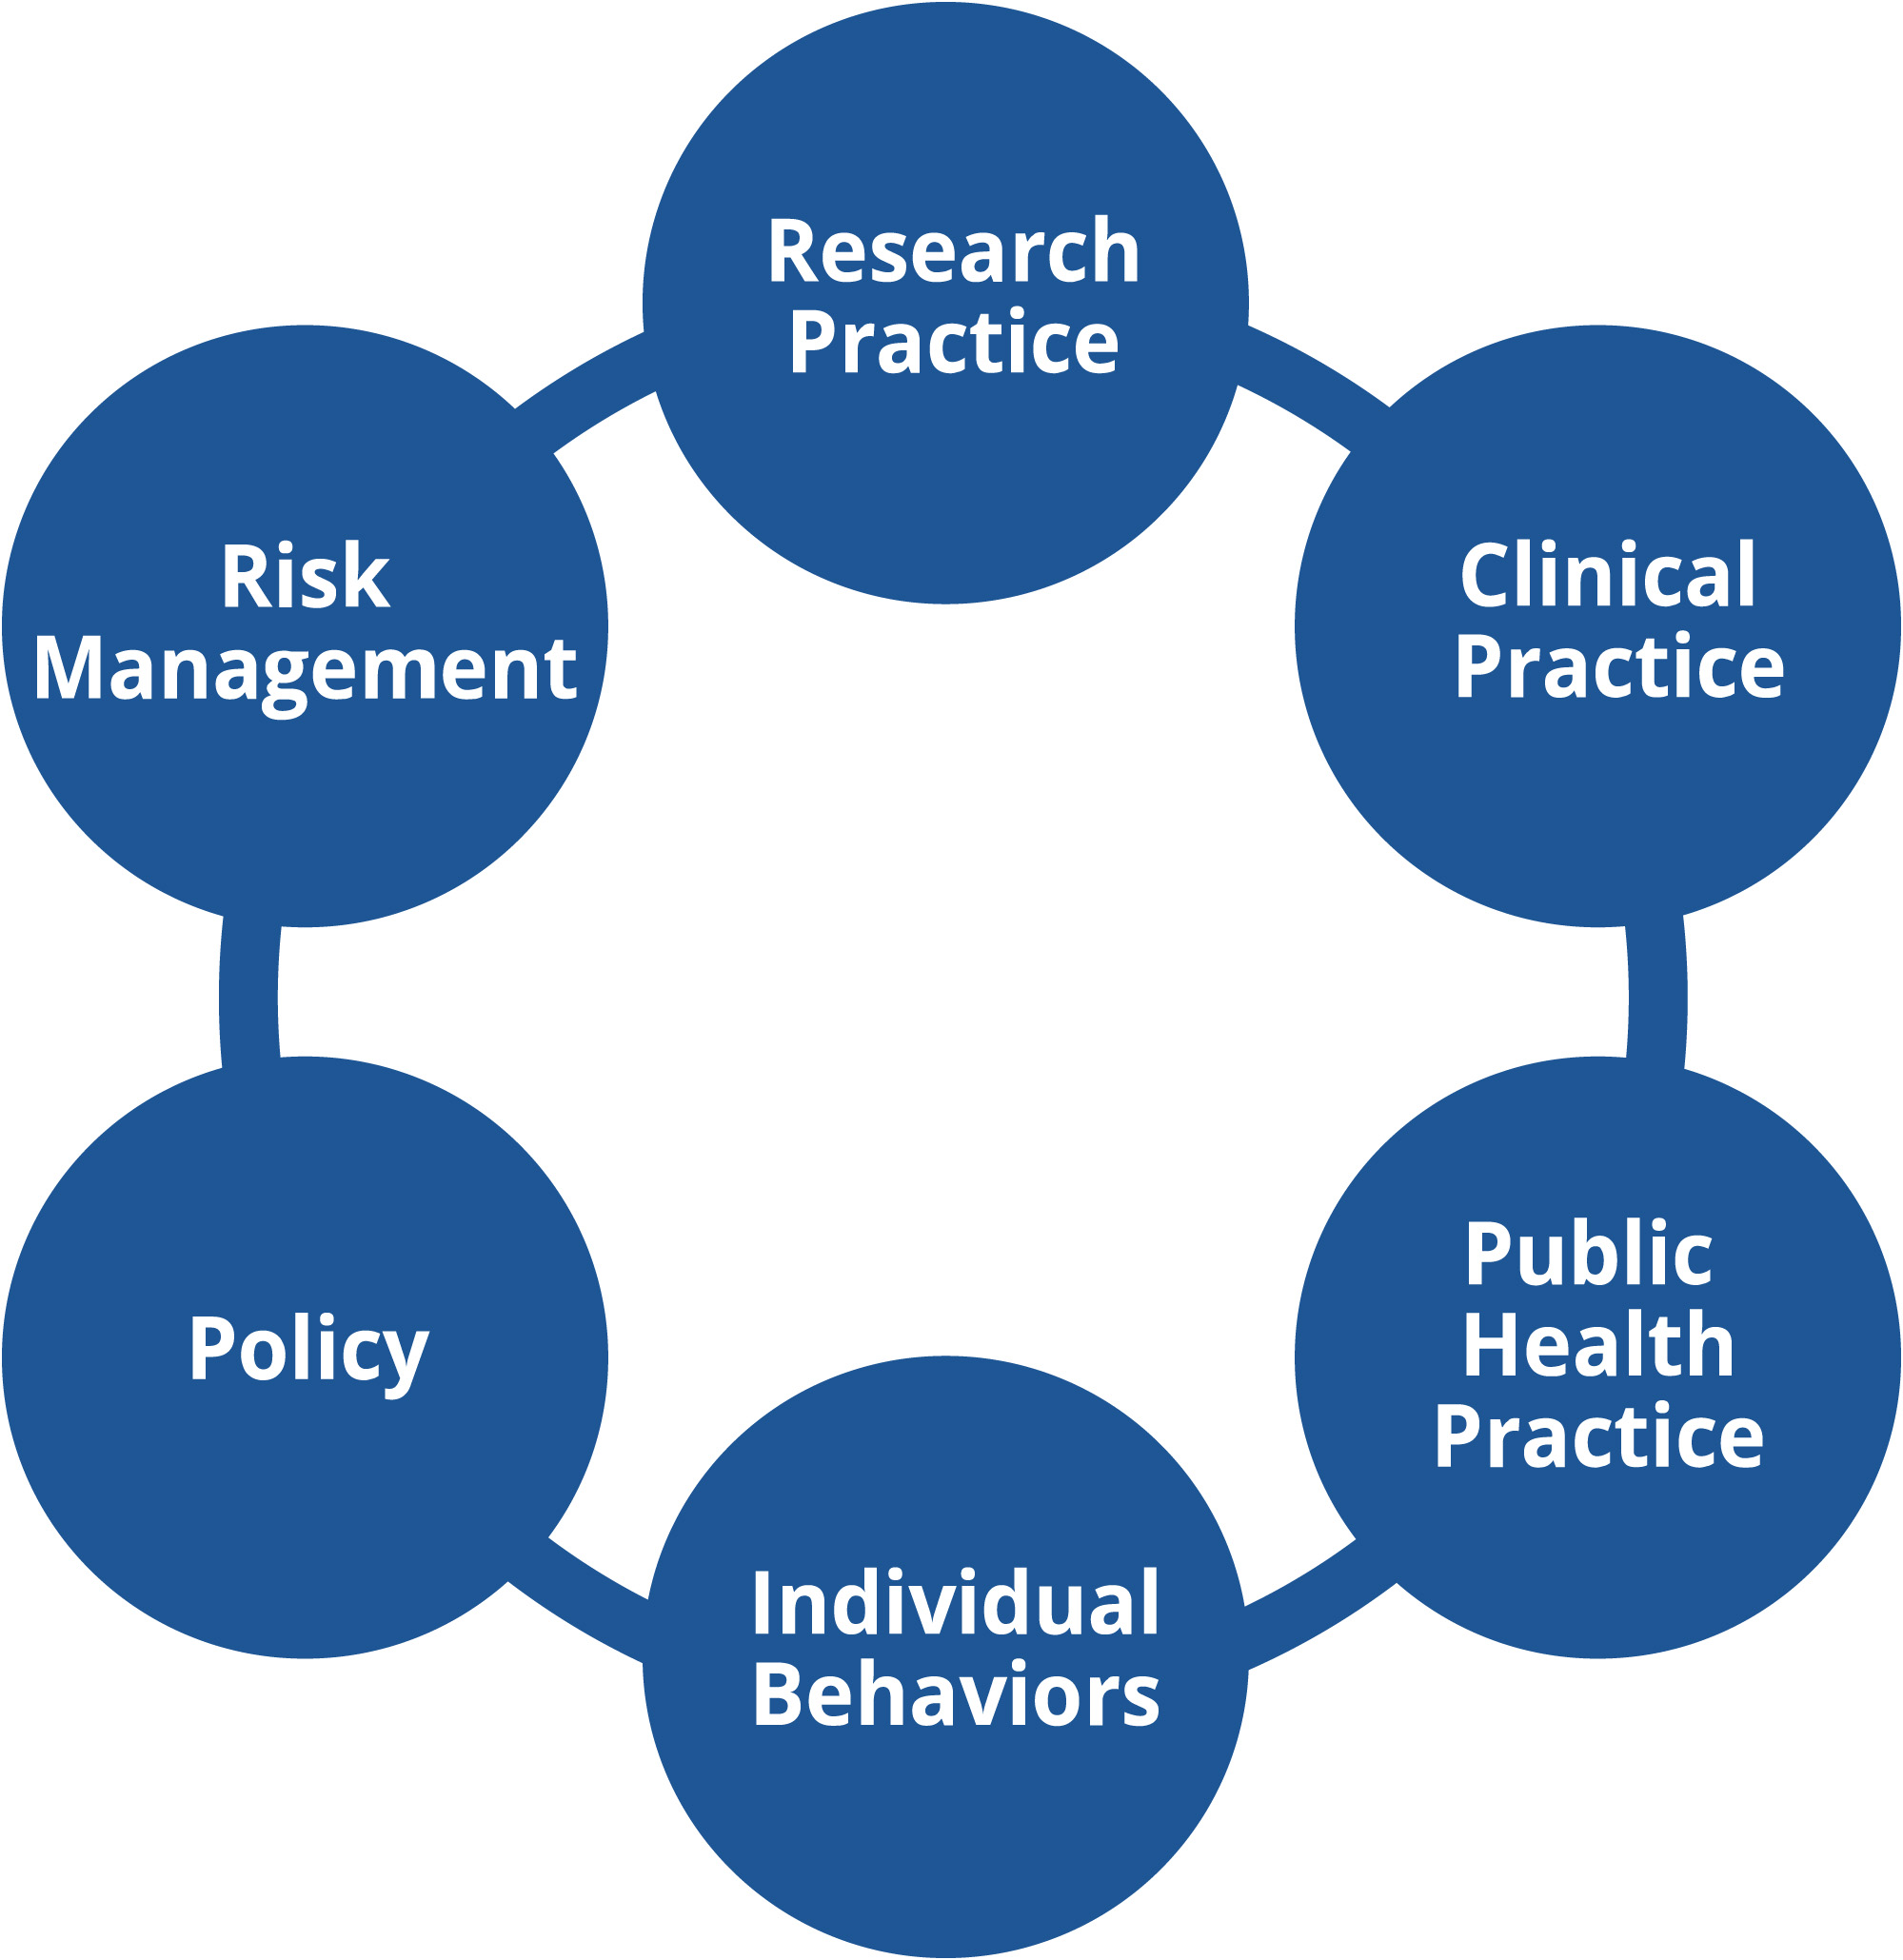 The practice category is represented as a dark blue ring that includes seven activities that we've identified that environmental health researchers tend to conduct within this category. These activities are represented as nodes along the ring and include Individual Behaviors, Policy, Risk Management, Research Practice, Clinical Practice, and Public Health Practice.